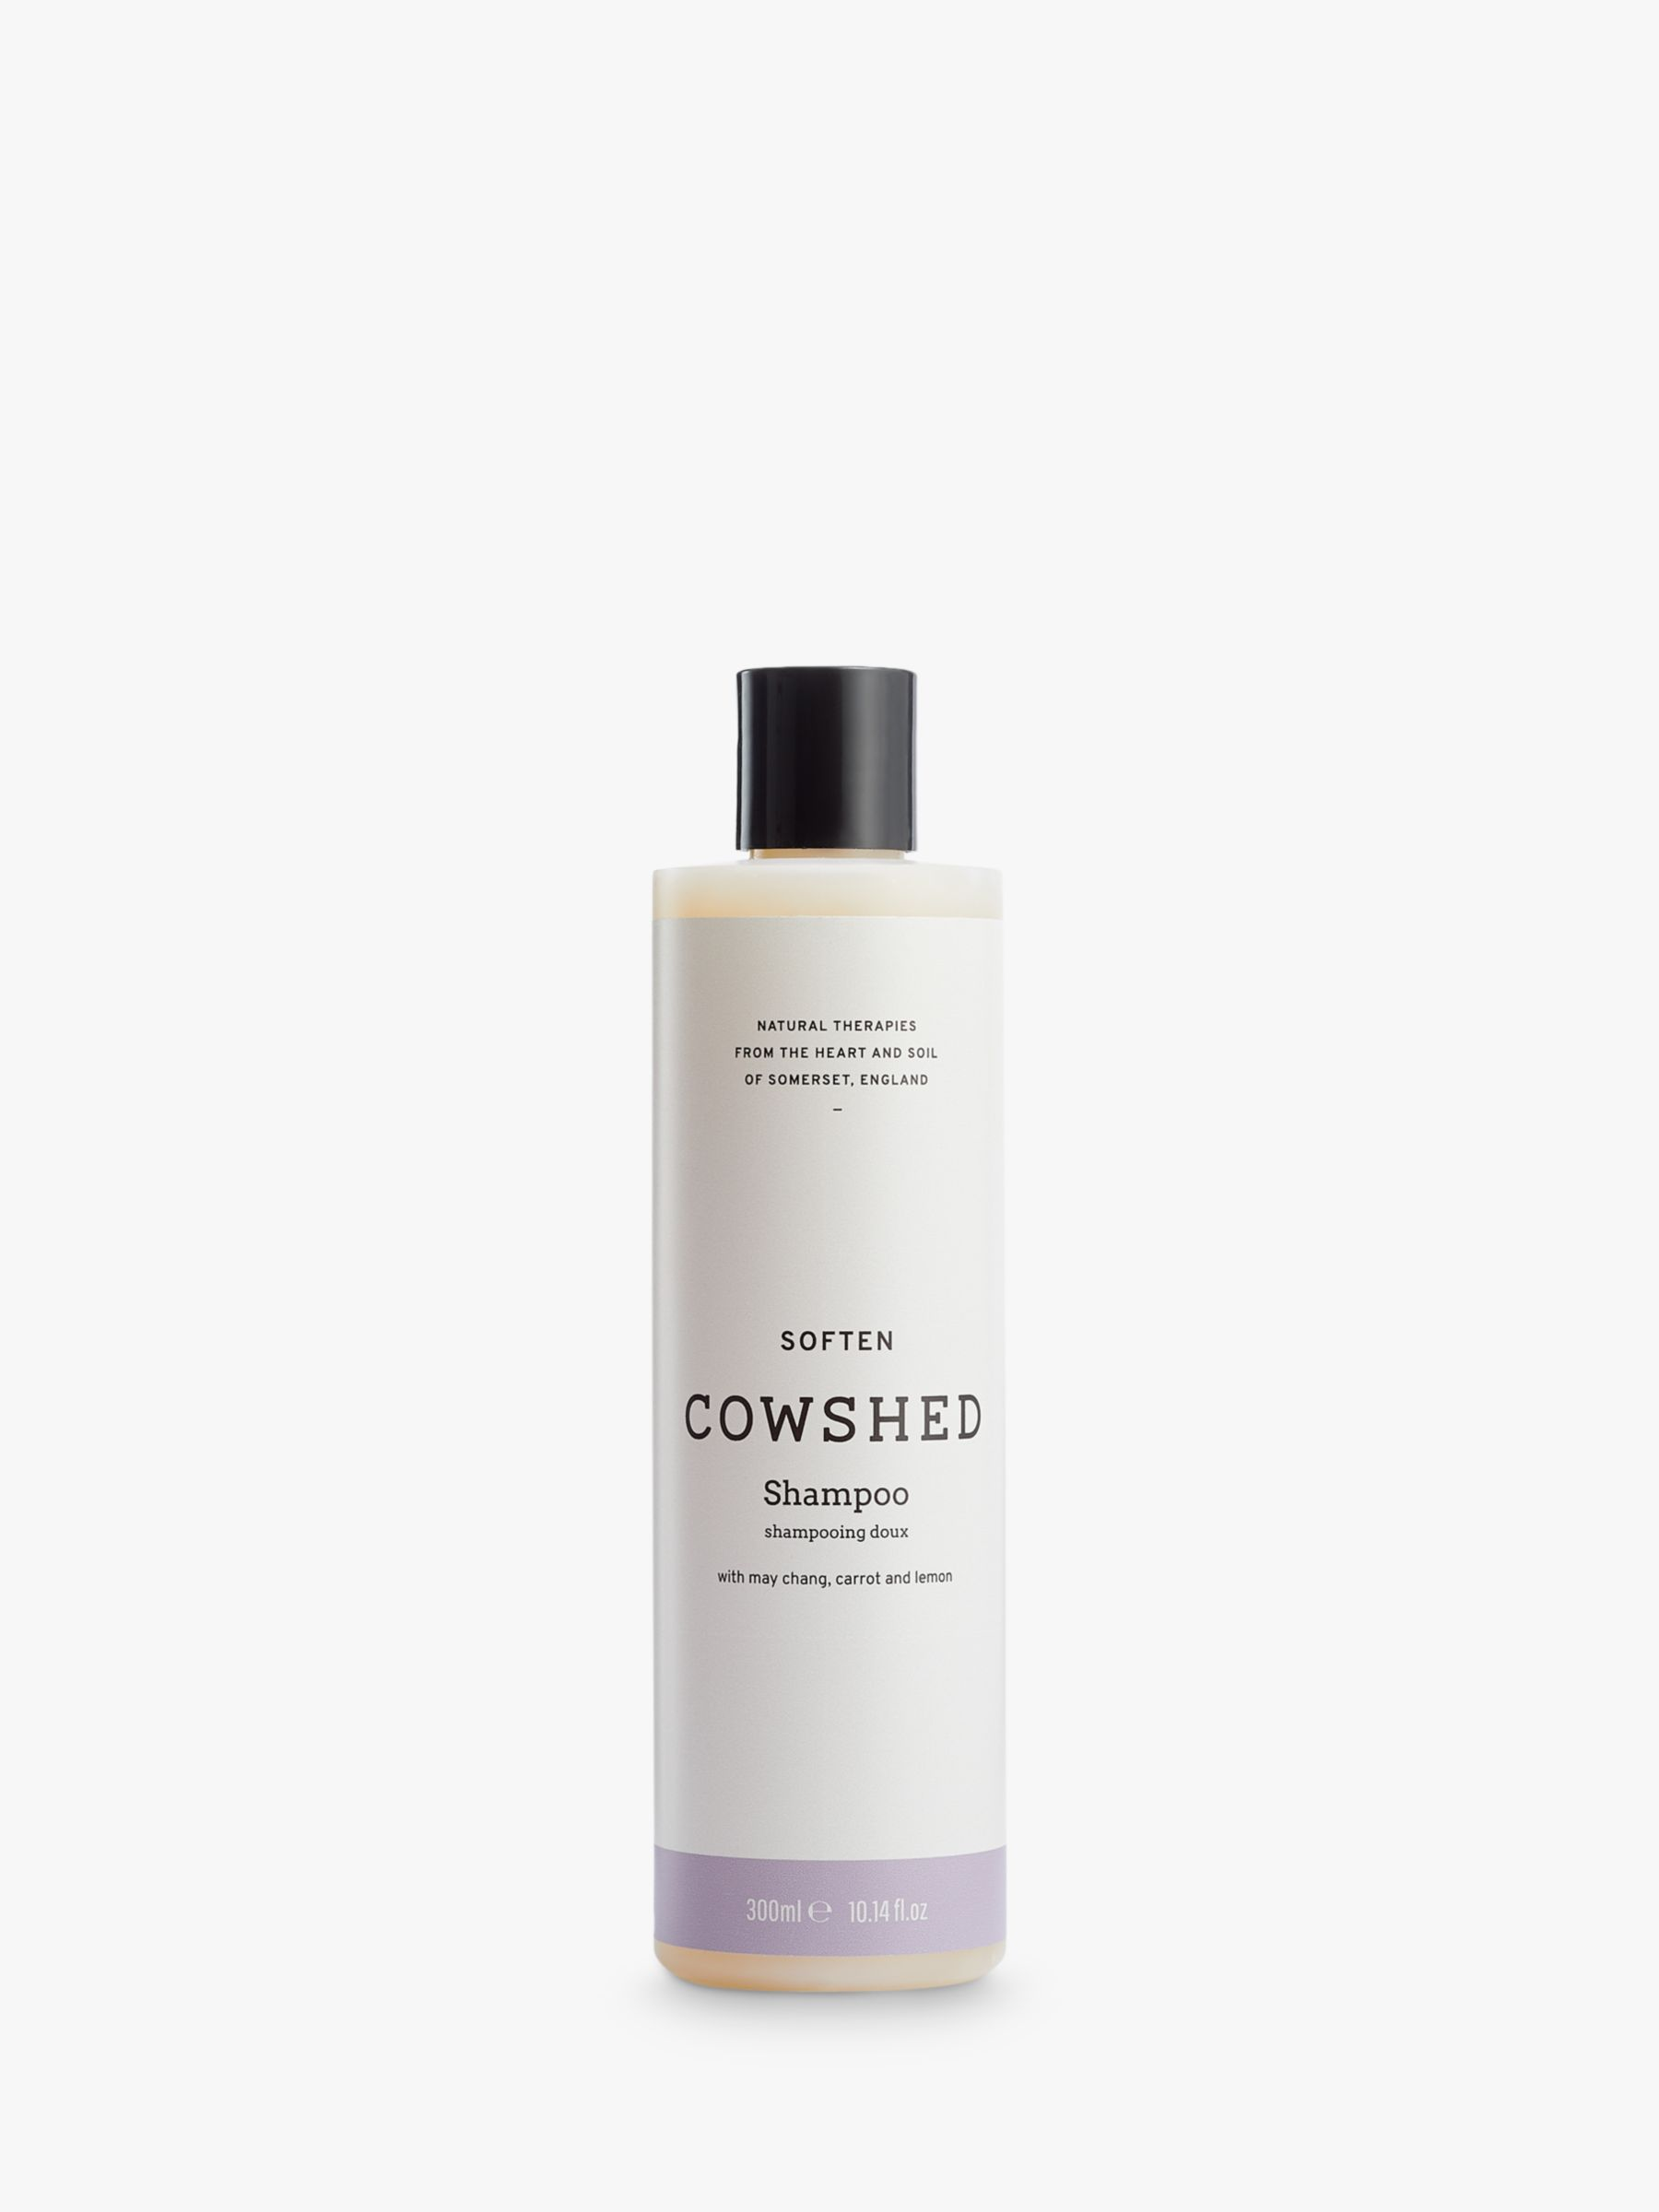 Cowshed Cowshed Soften Shampoo